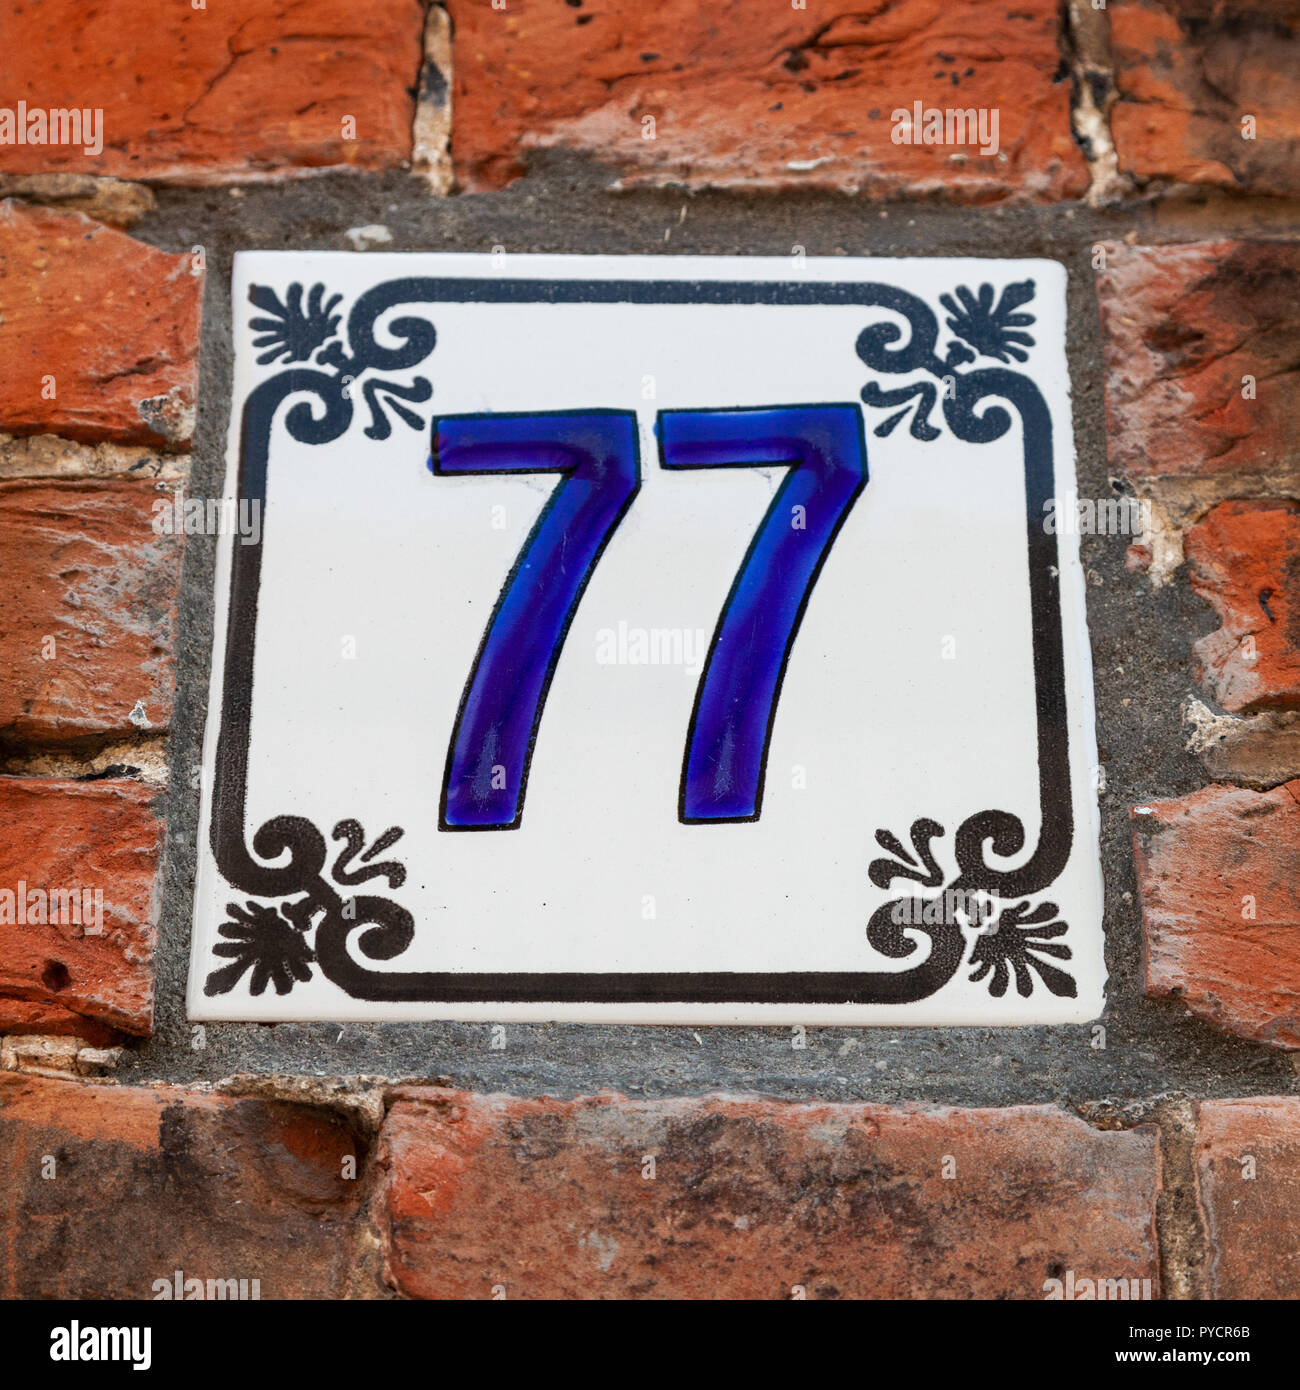 House number seventy-seven 77 painted on ceramic tile in blue and black  with fleur-de-lis pattern from Sweden or Belgium - Stock Image